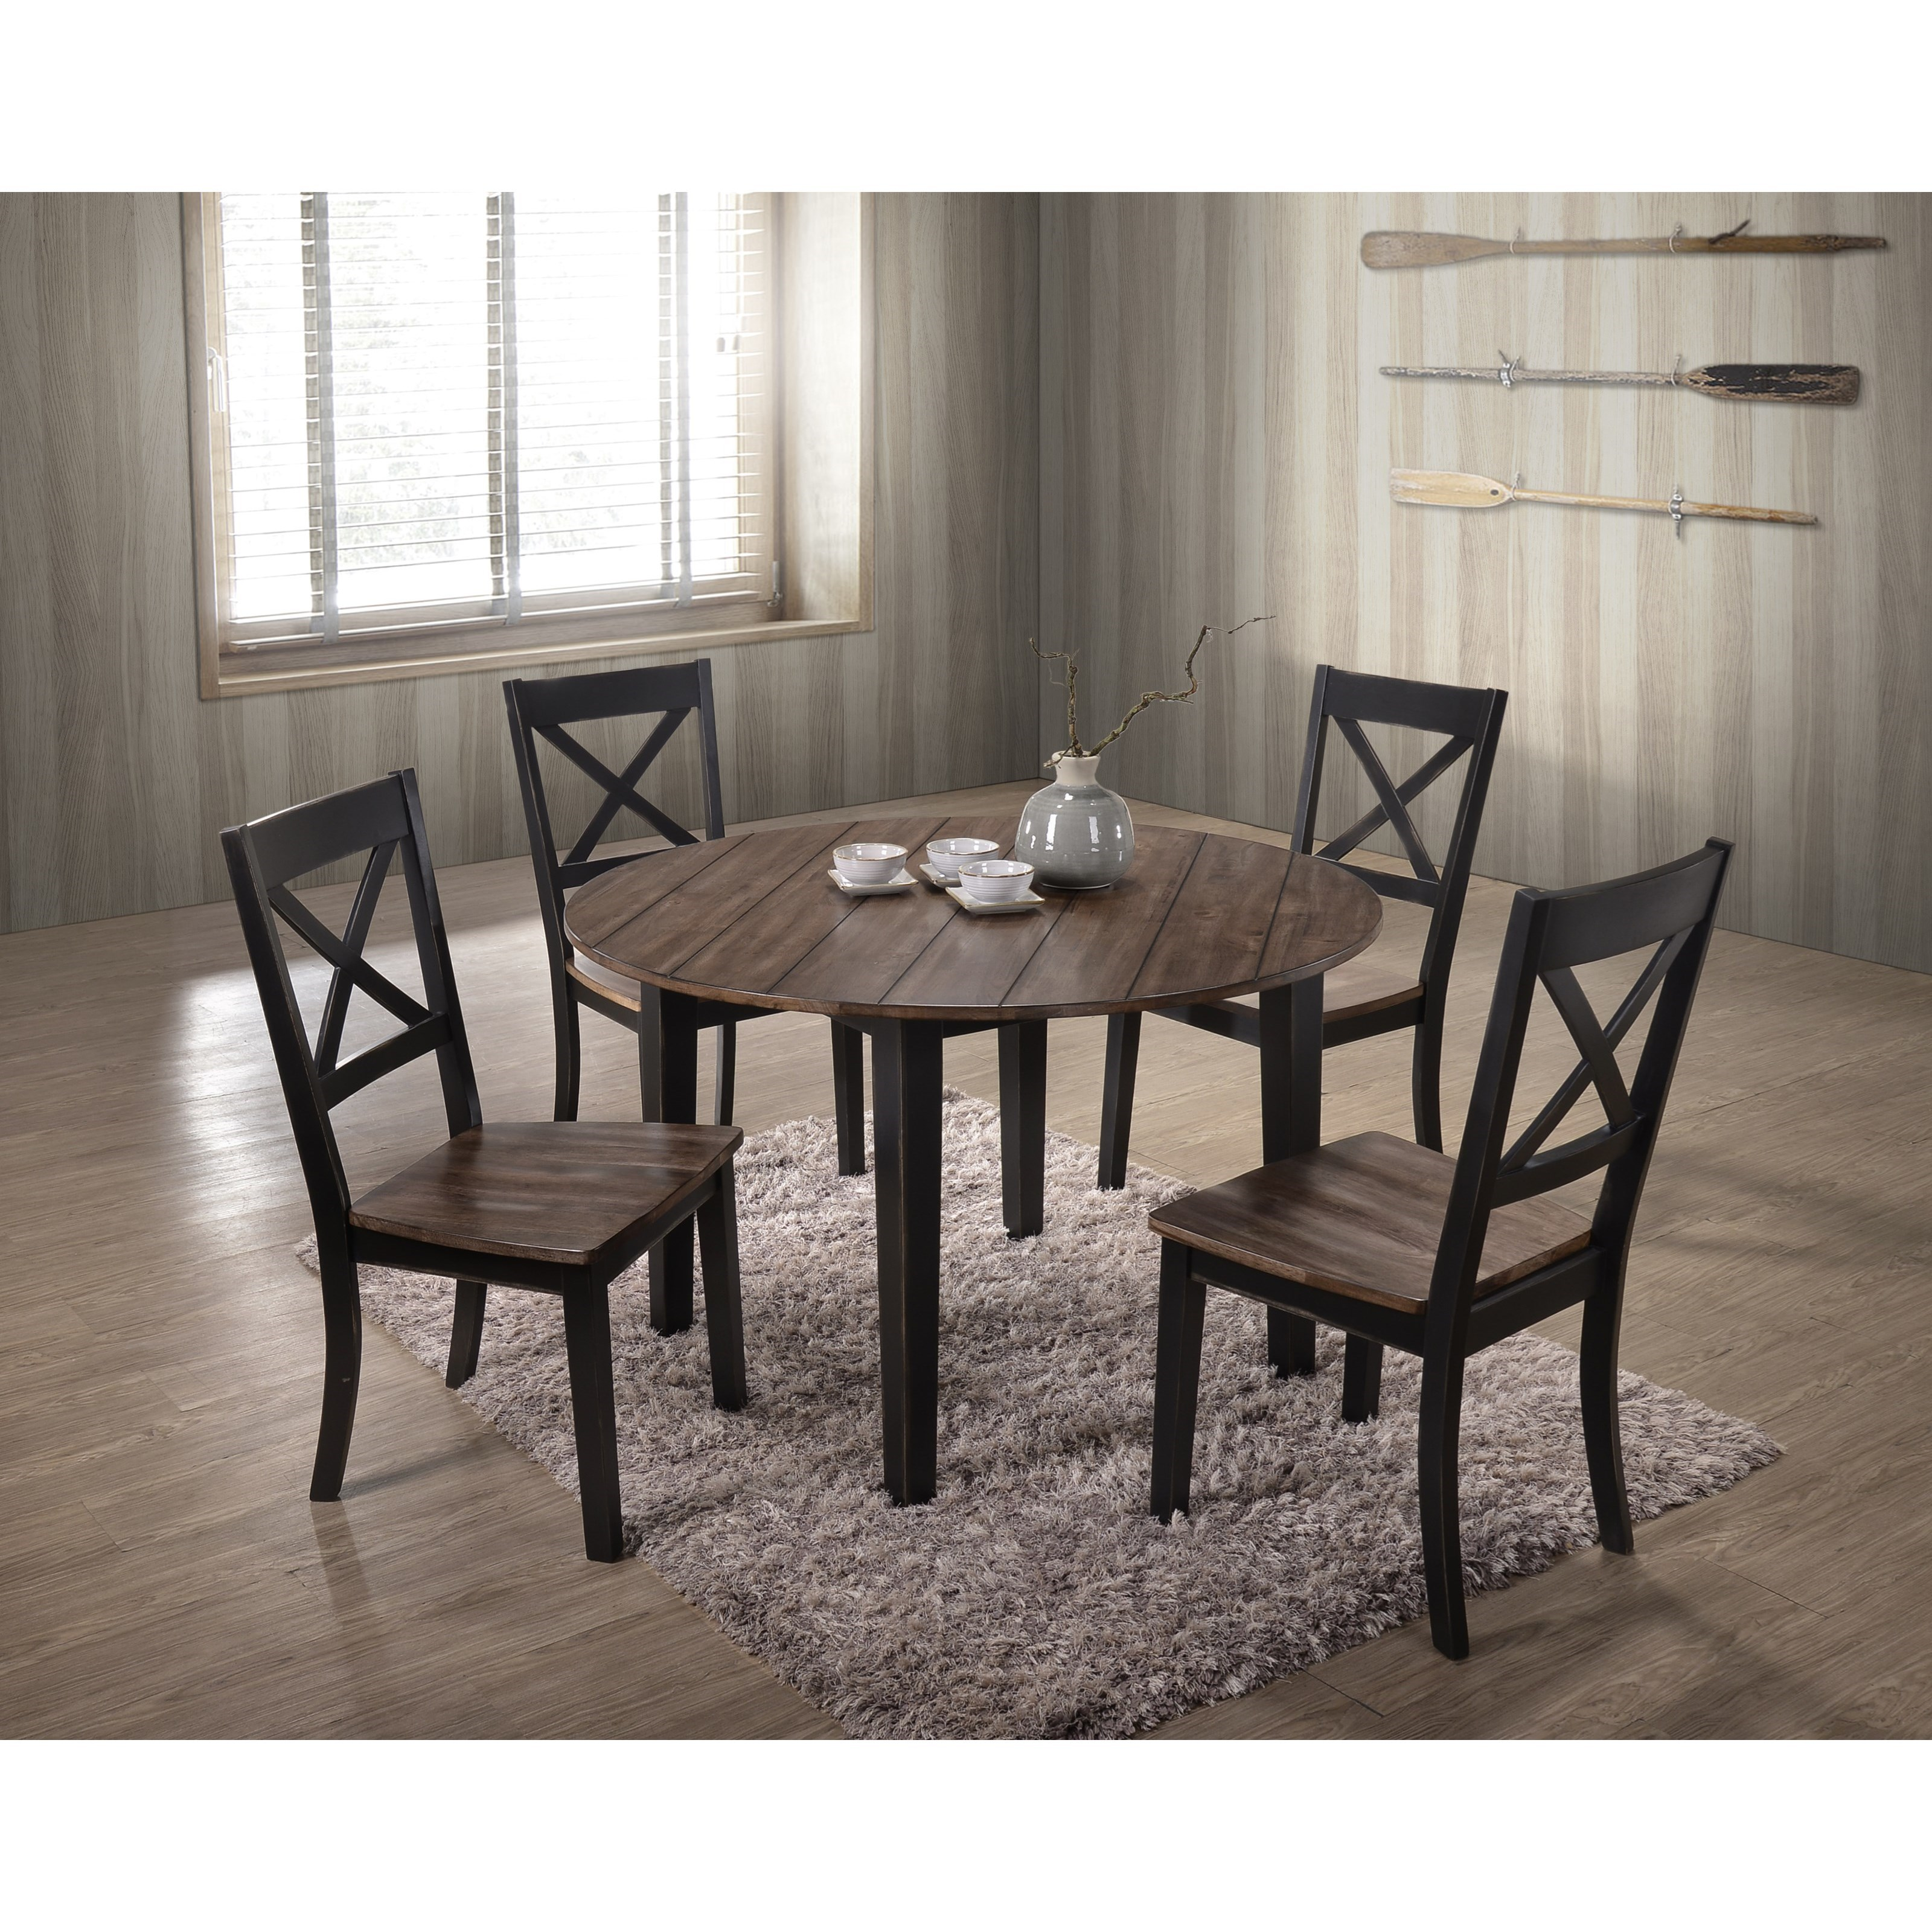 5058 5 Piece Table and Chair Set by United Furniture Industries at Dream Home Interiors